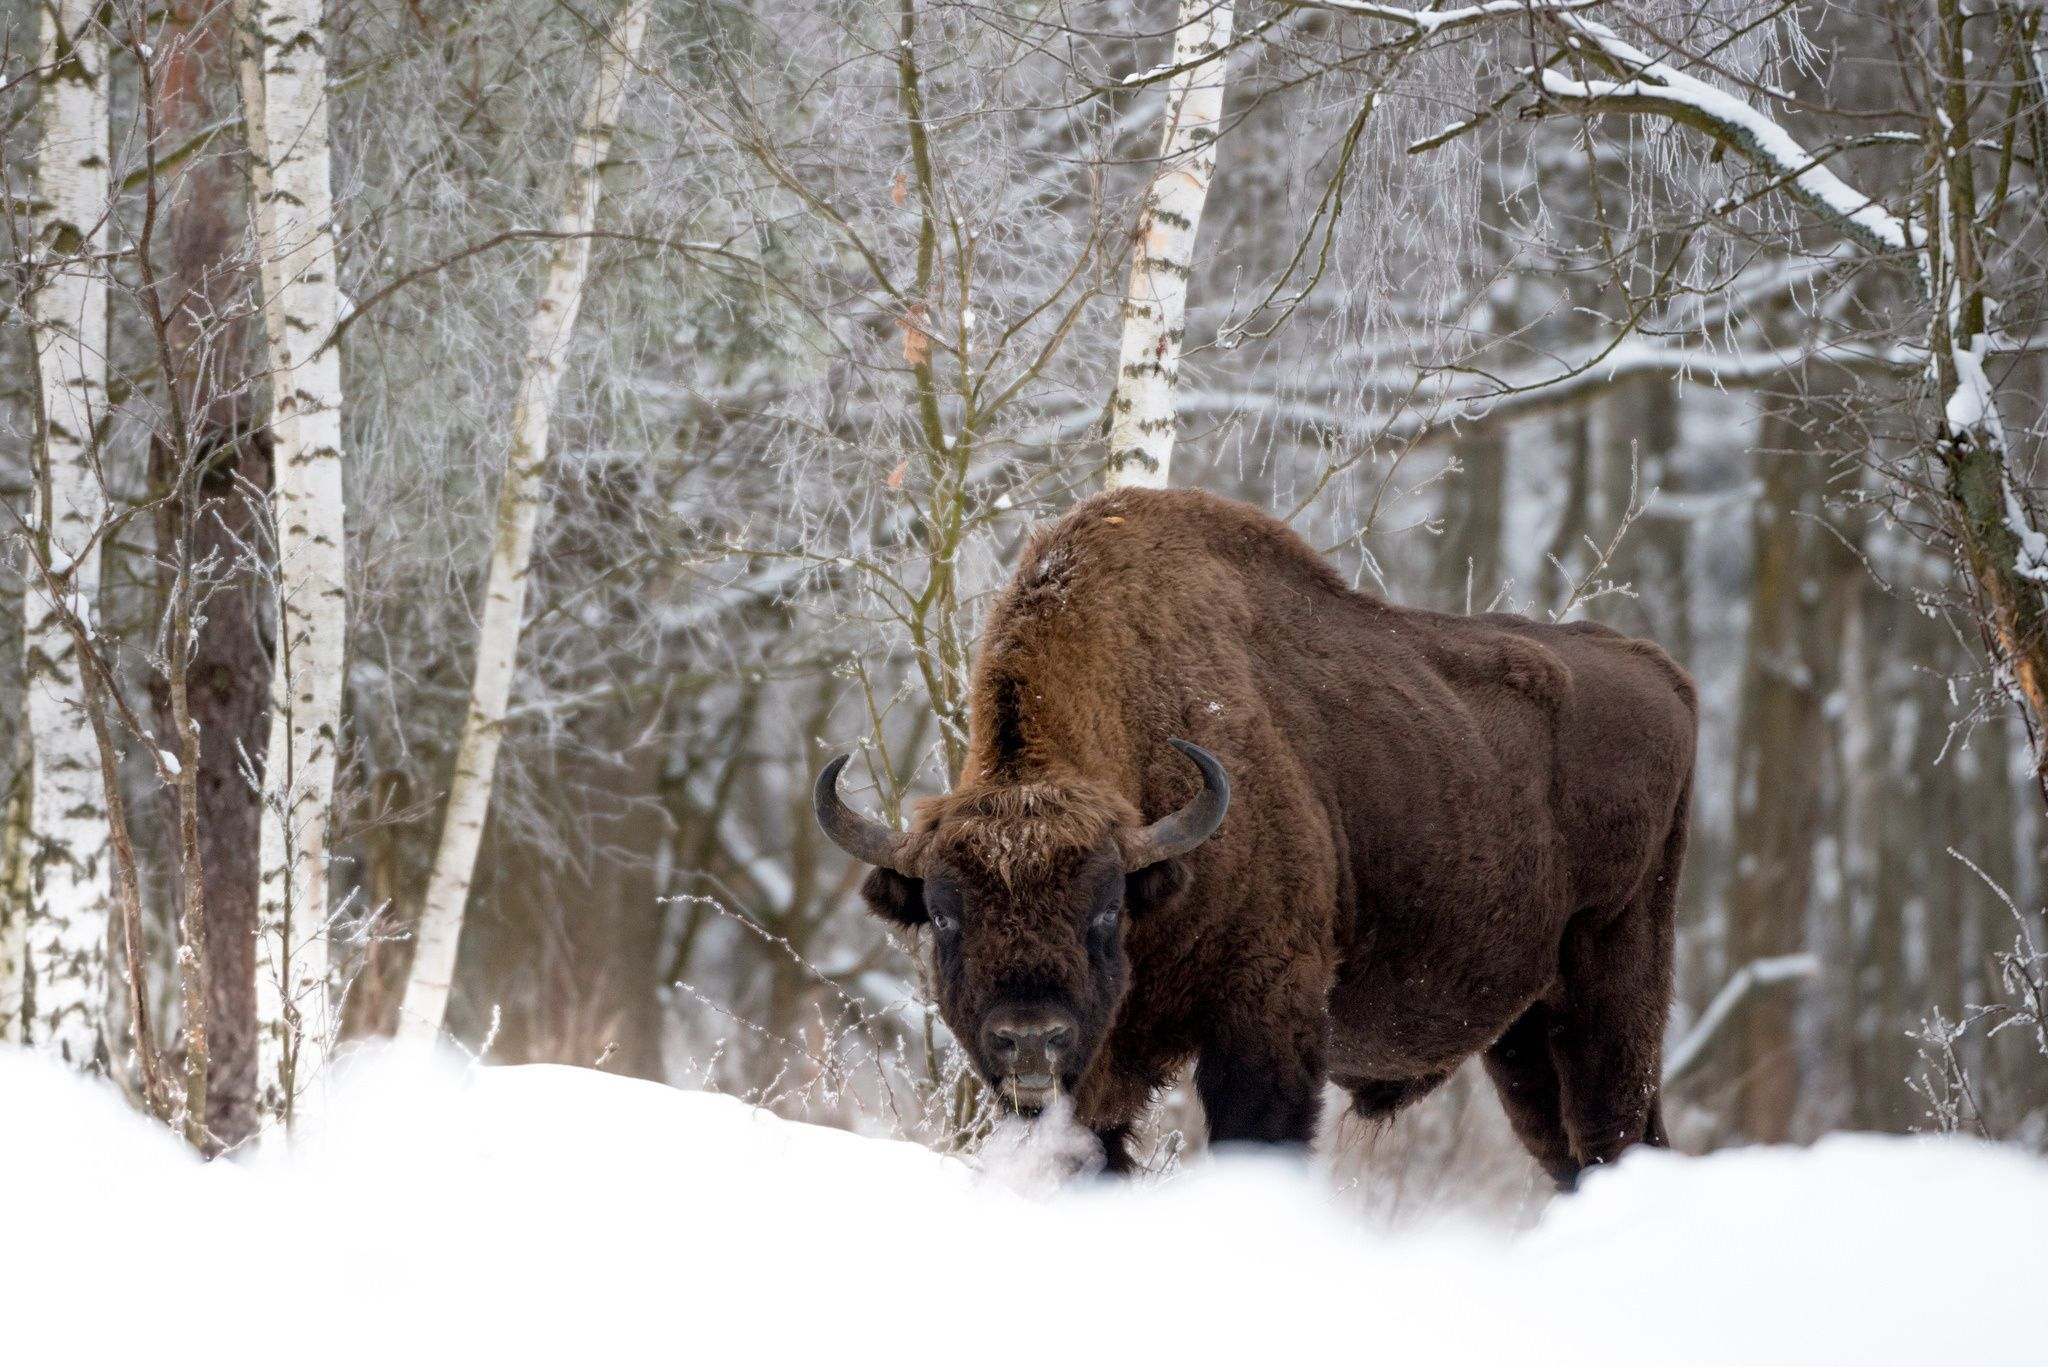 american bison wallpapers - DriverLayer Search Engine